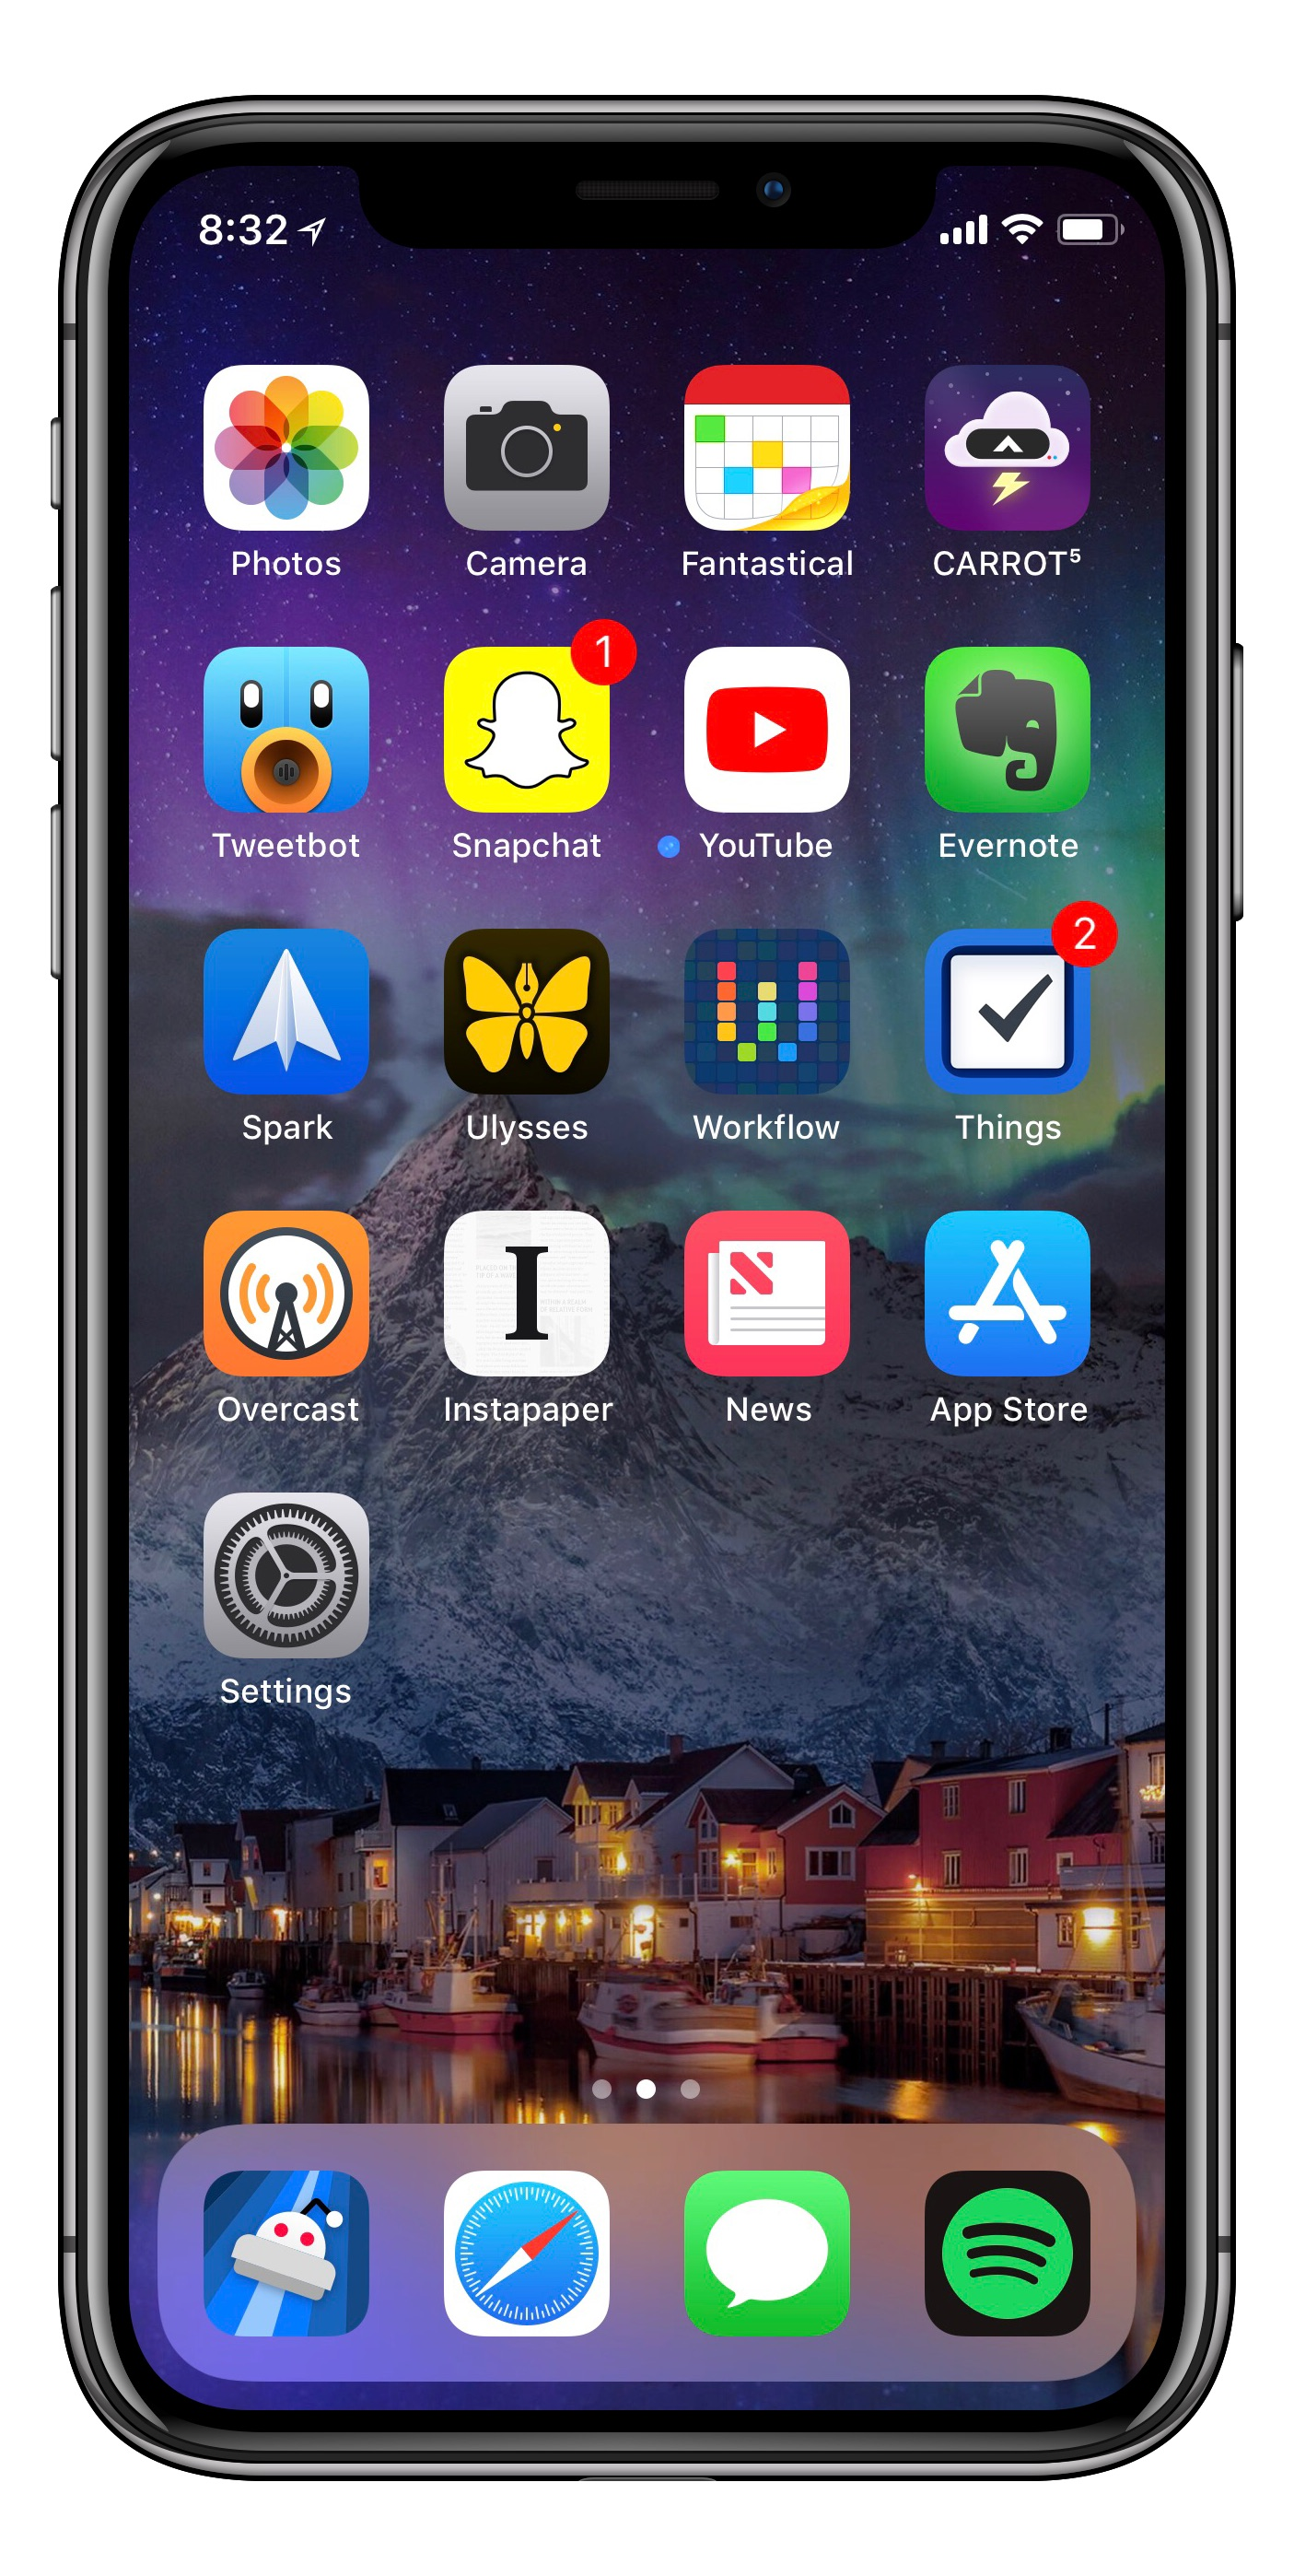 My iPhone Home Screen – The Nerdy Student